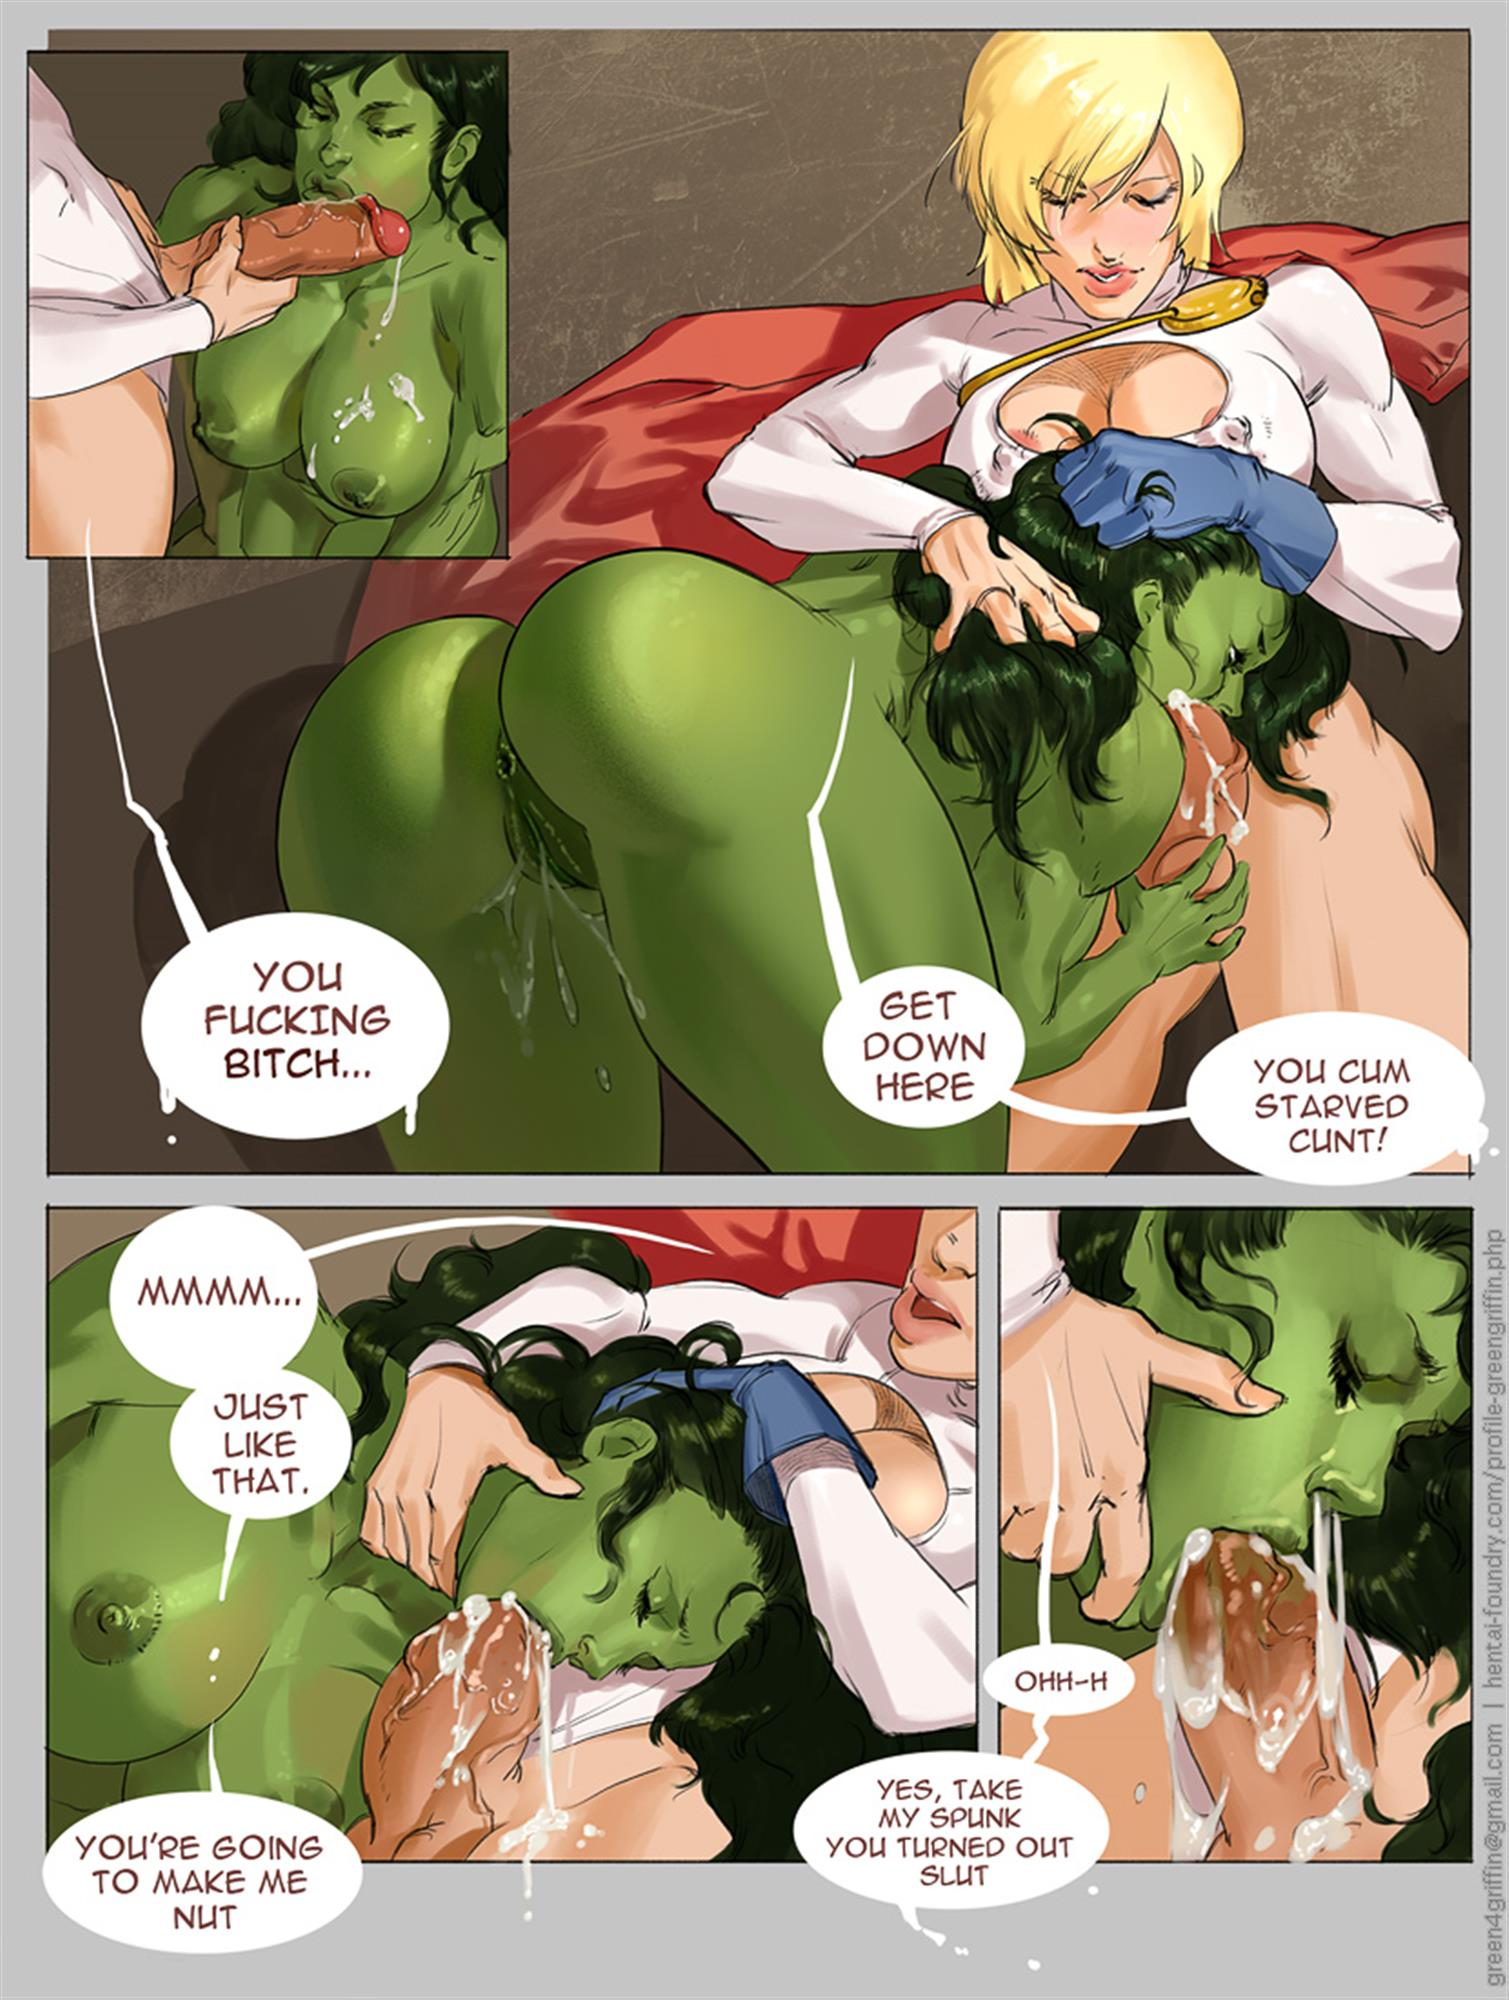 She-Hulk dominated by Powergirl